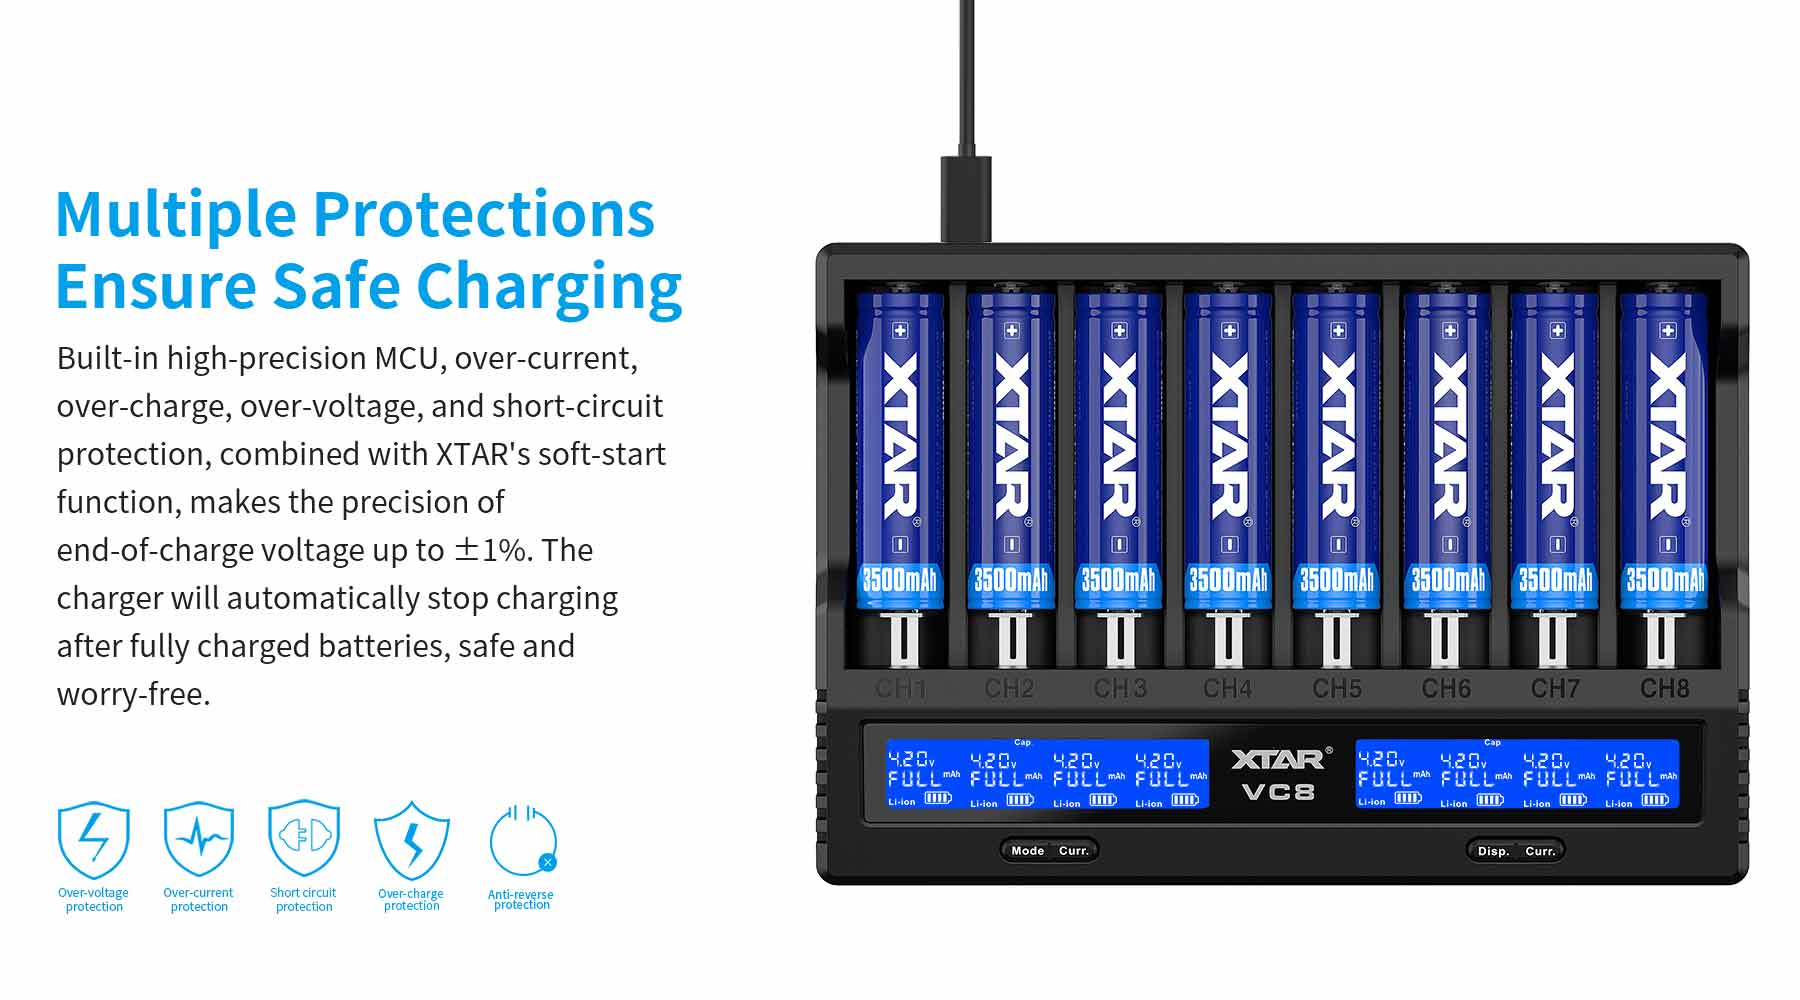 VC8 Charger has the smarts to know which sizes of lithium batteries can be charged at a higher rate, and which ones can't. Charge IMR 18650, IMR 18350, and a 14500. The two smaller capacity batteries got special treatment.